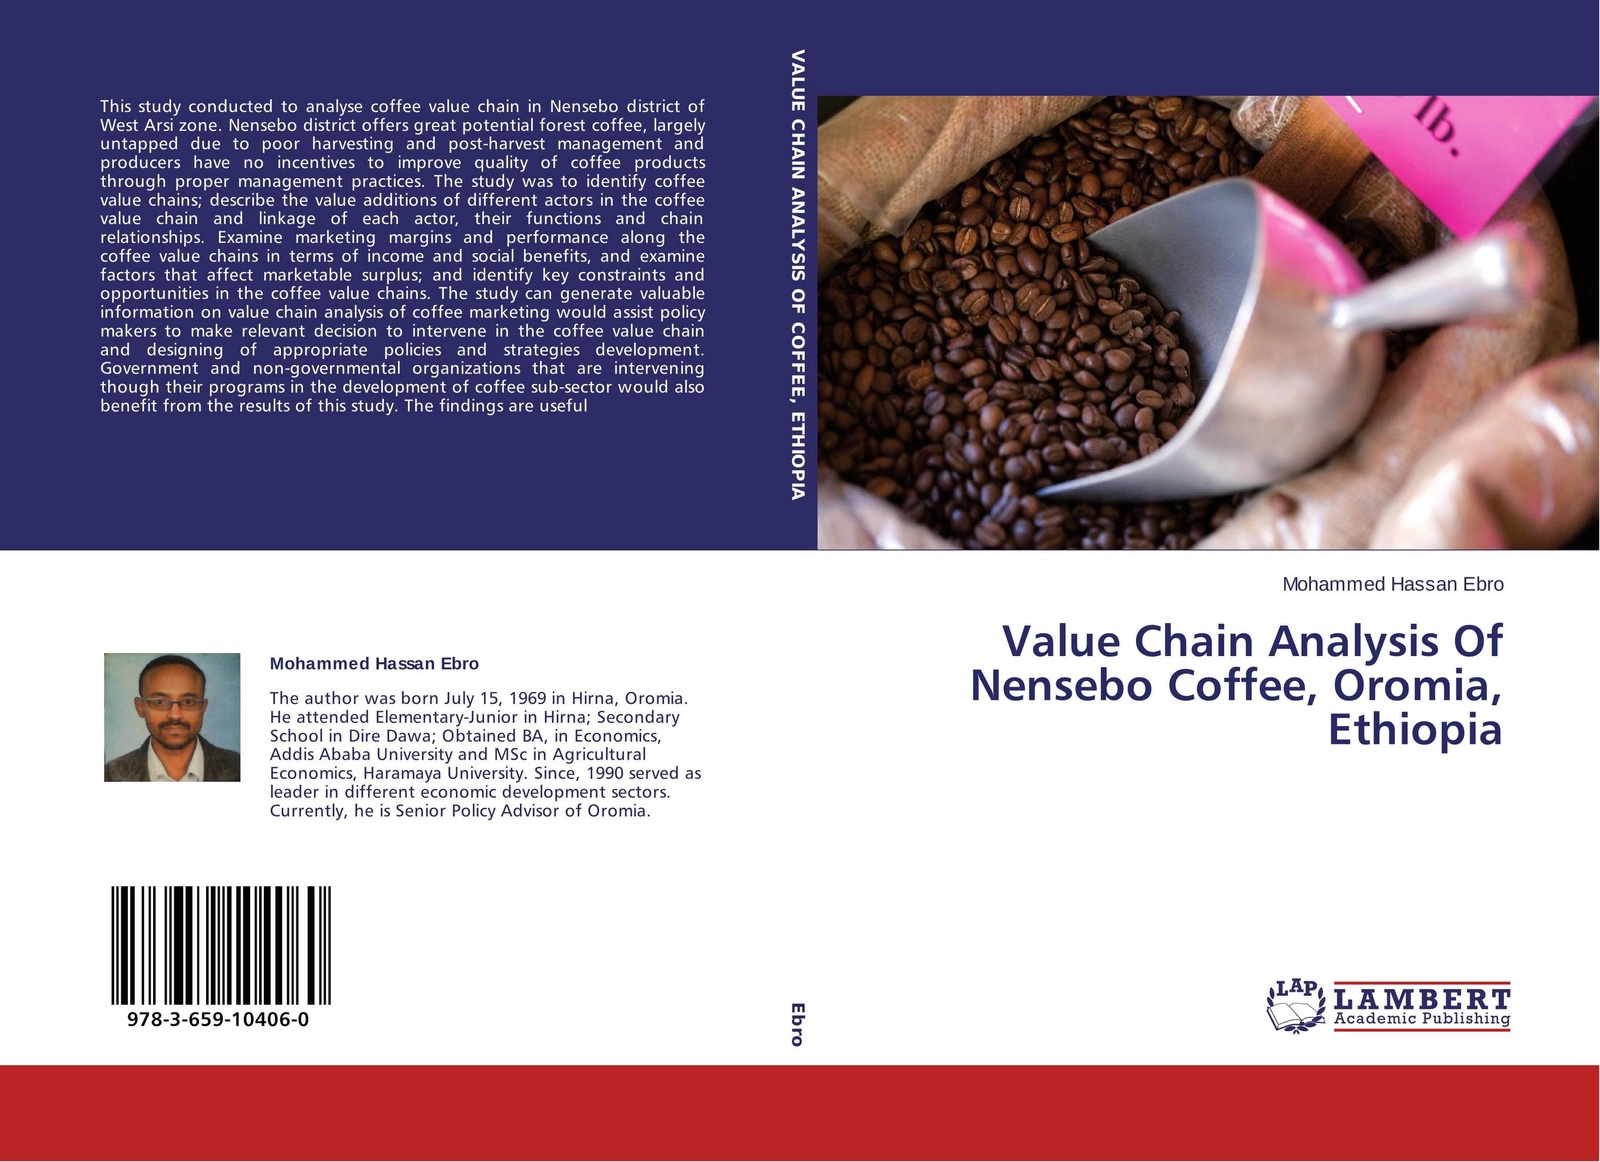 Mohammed Hassan Ebro Value Chain Analysis Of Nensebo Coffee, Oromia, Ethiopia the story of coffee